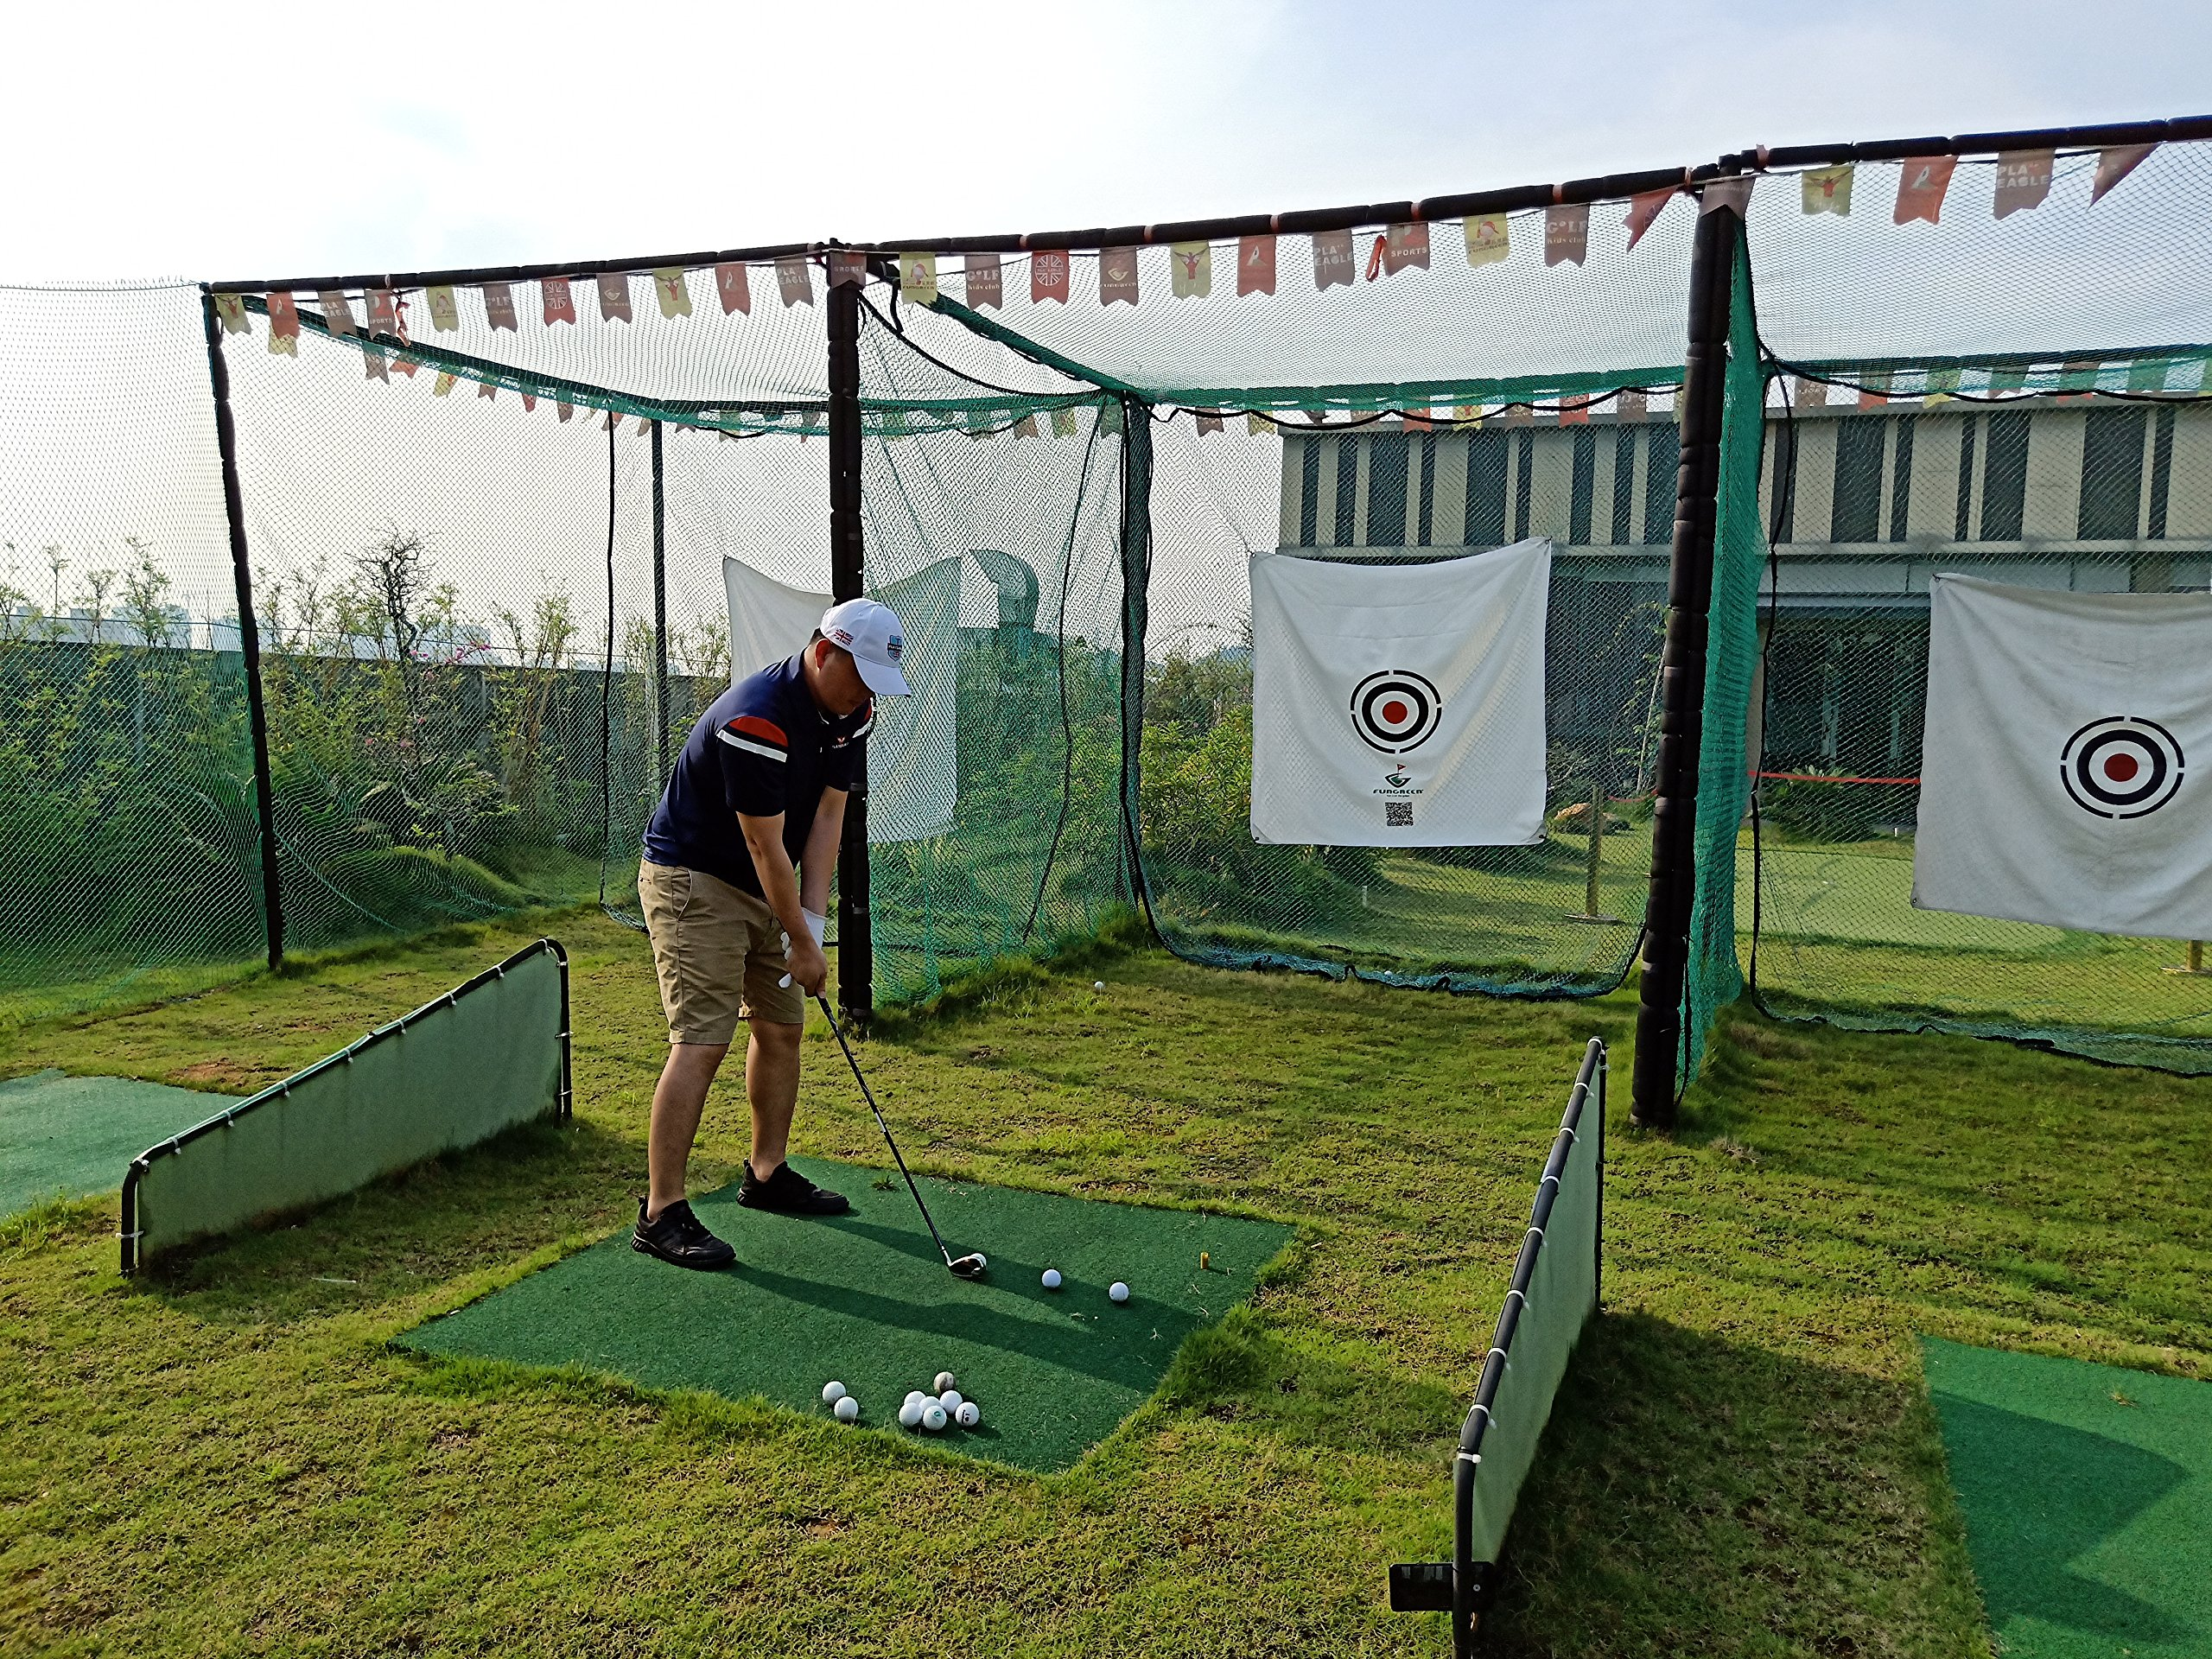 FUNGREEN 1.5Mx1.5M Golf Hitting Target Cloth for Golf Practice Indoor Training Outdoor Court Hitting Cloth Golf Accessories by FUNGREEN (Image #4)